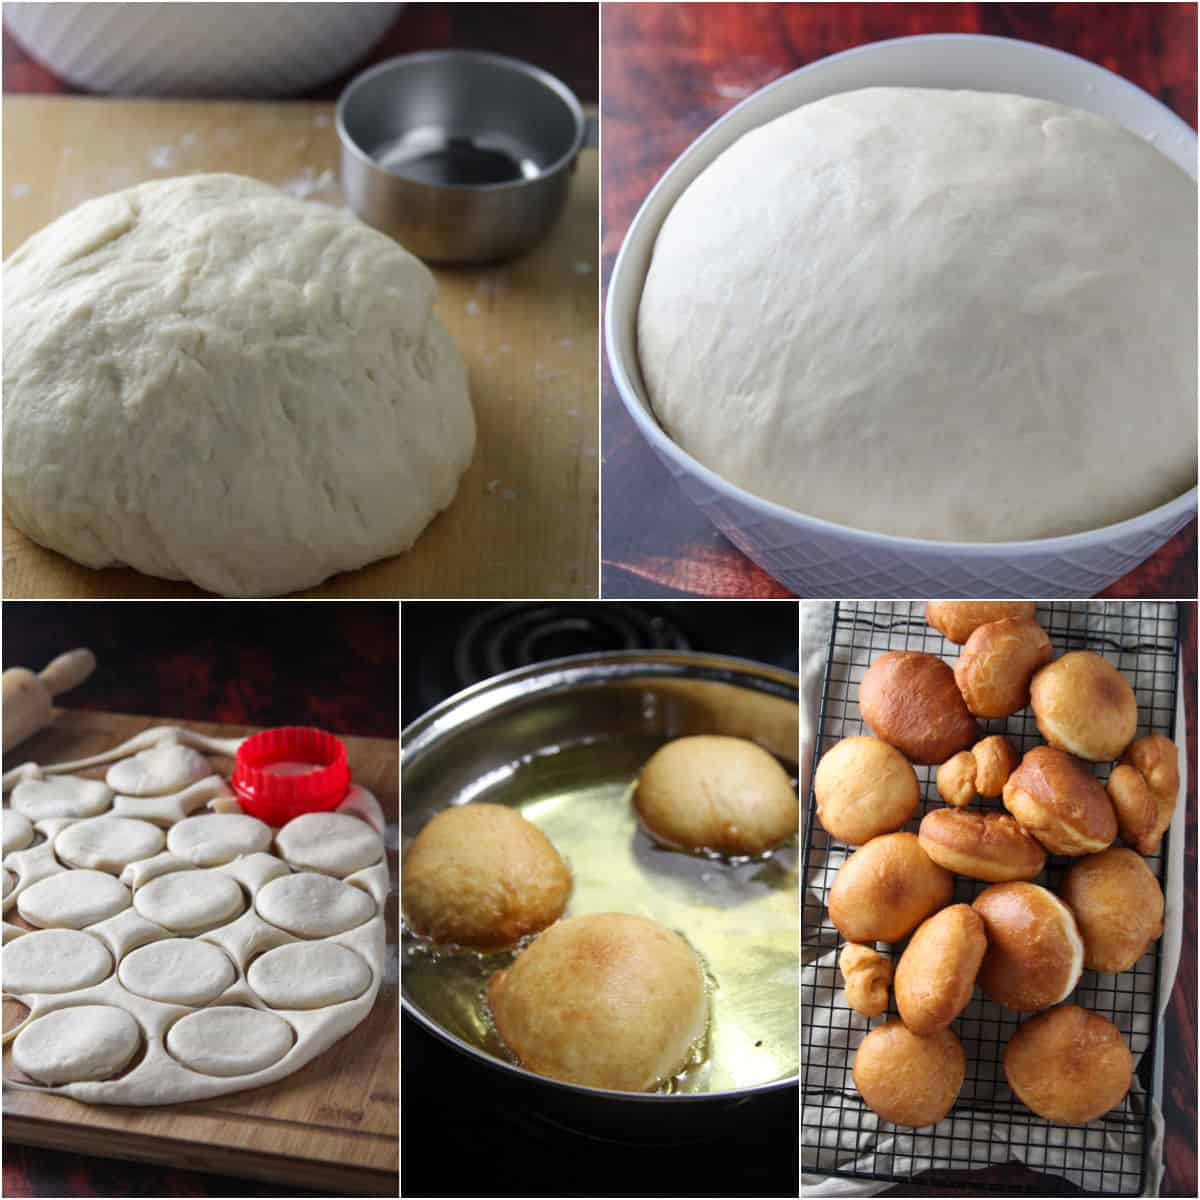 A collage showing the dough rising, cutting, and frying the tiramisu donuts.